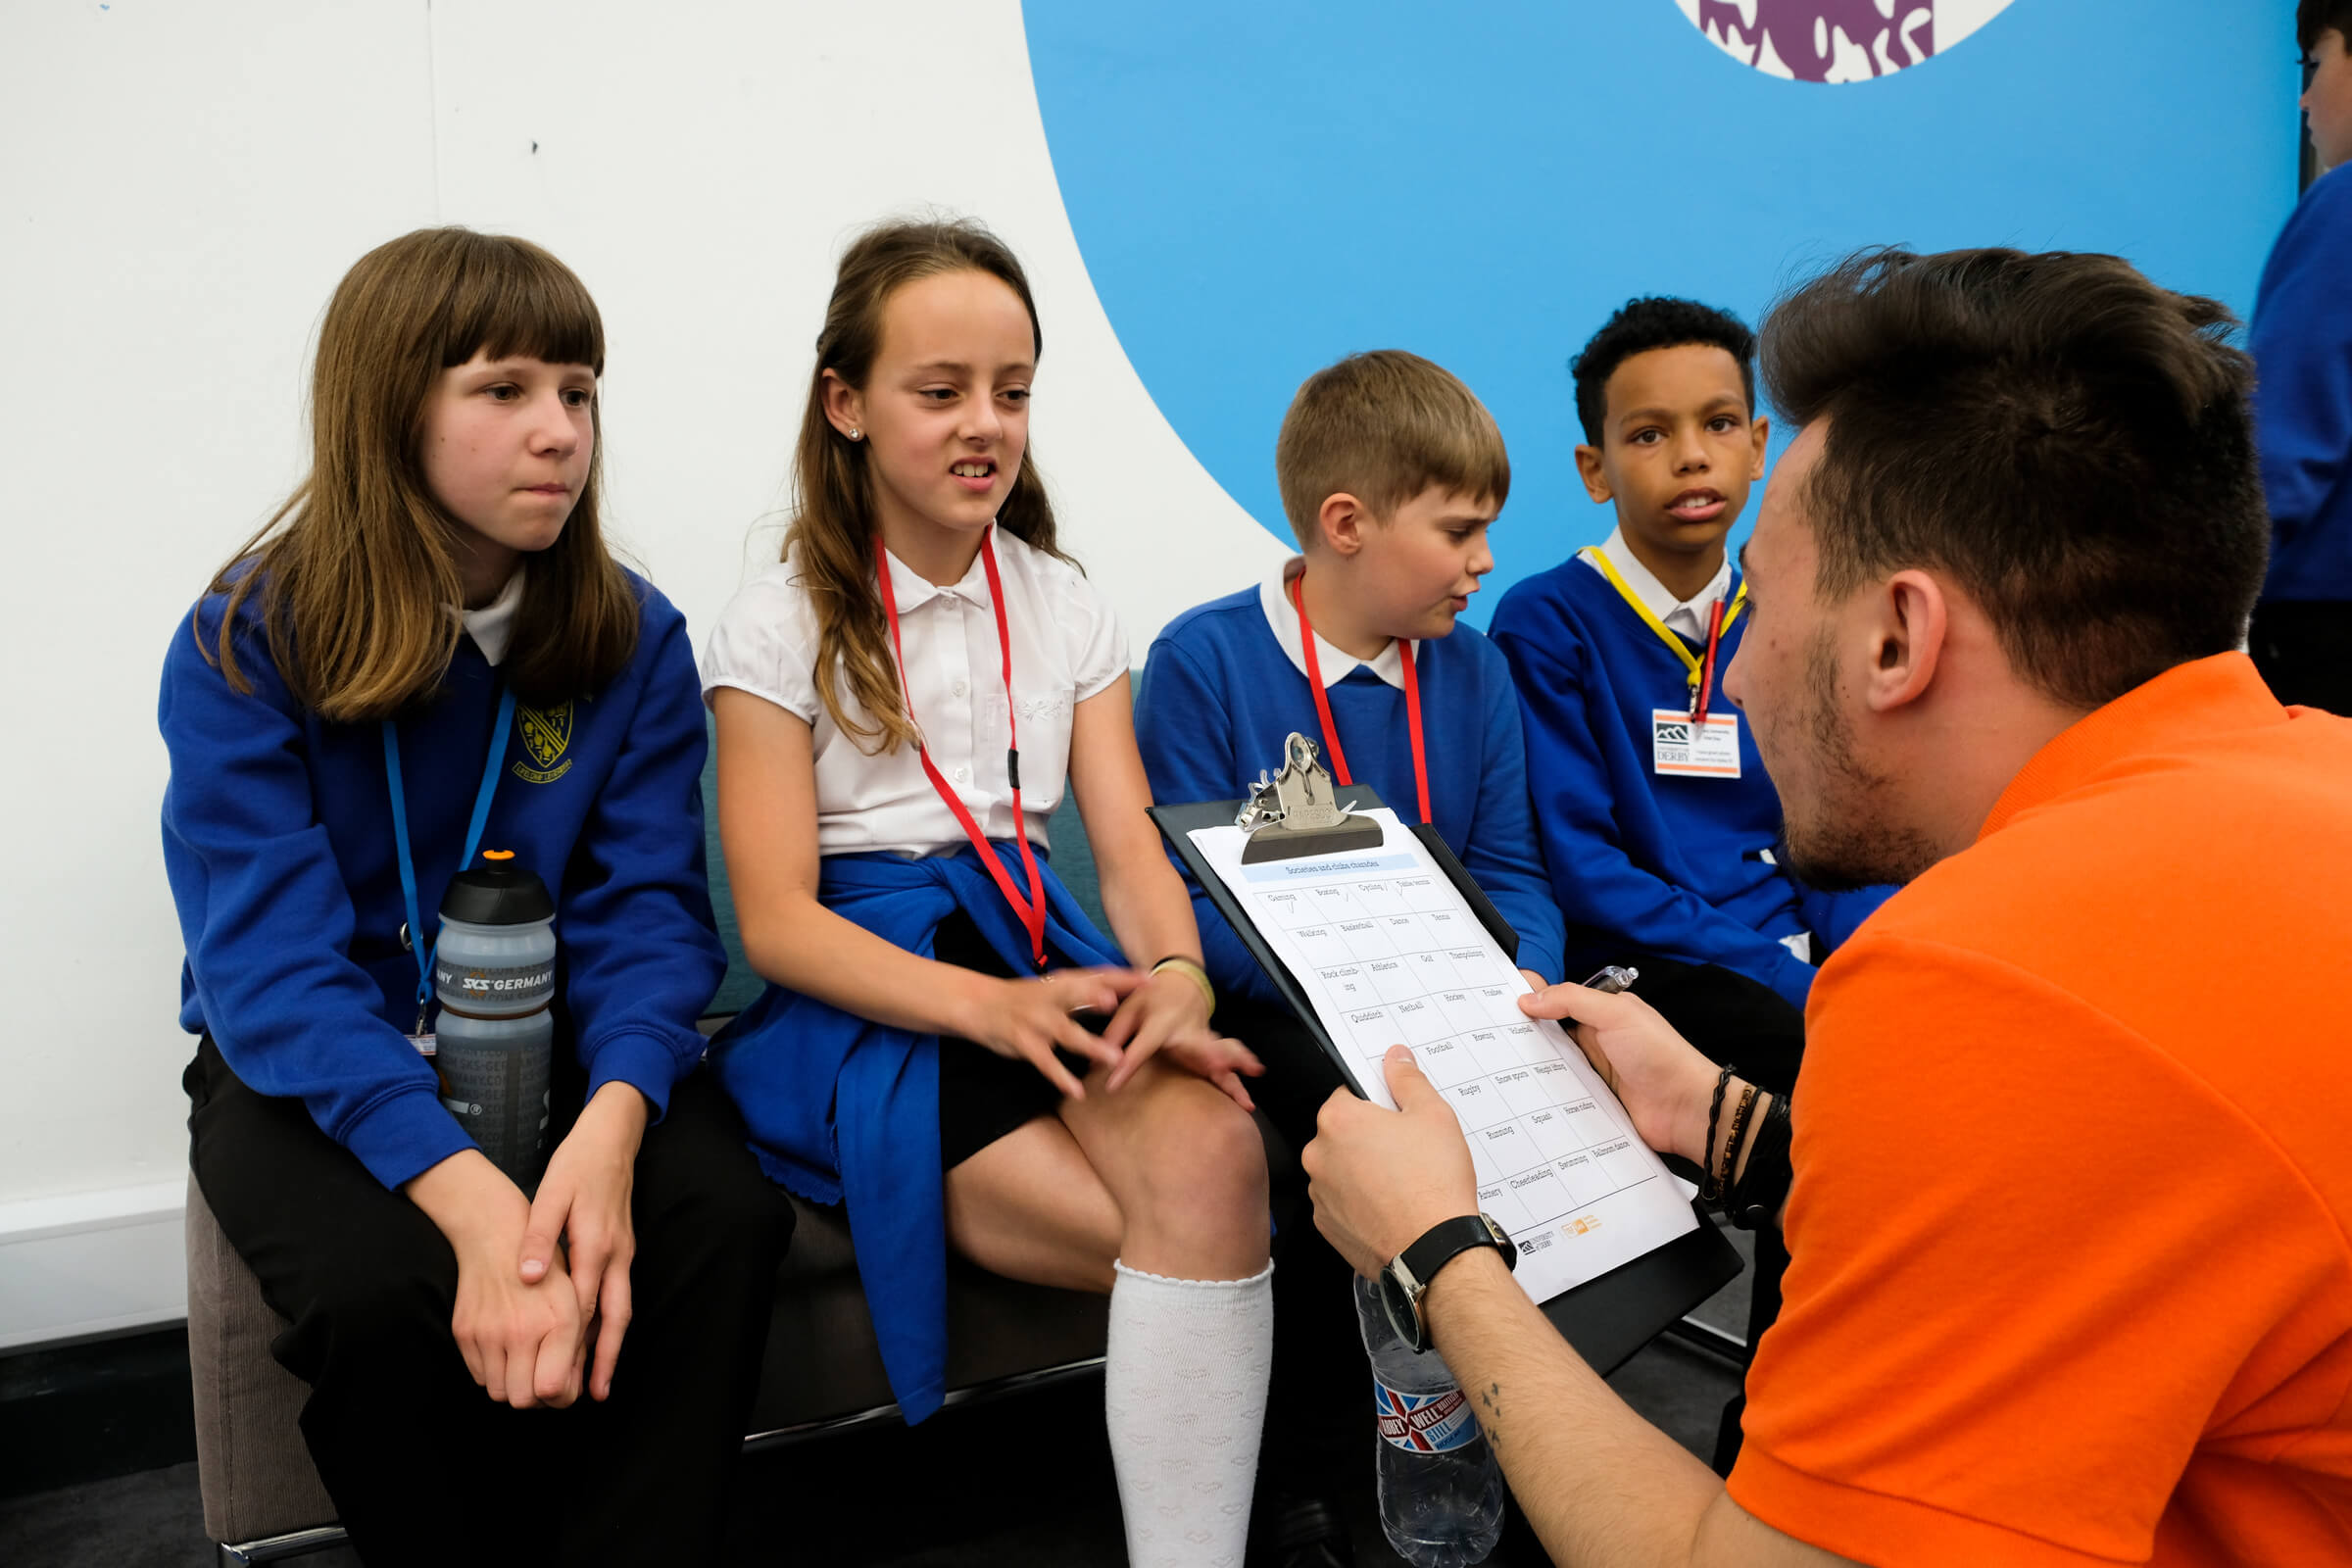 A student ambassador working with primary school students during a school visit day